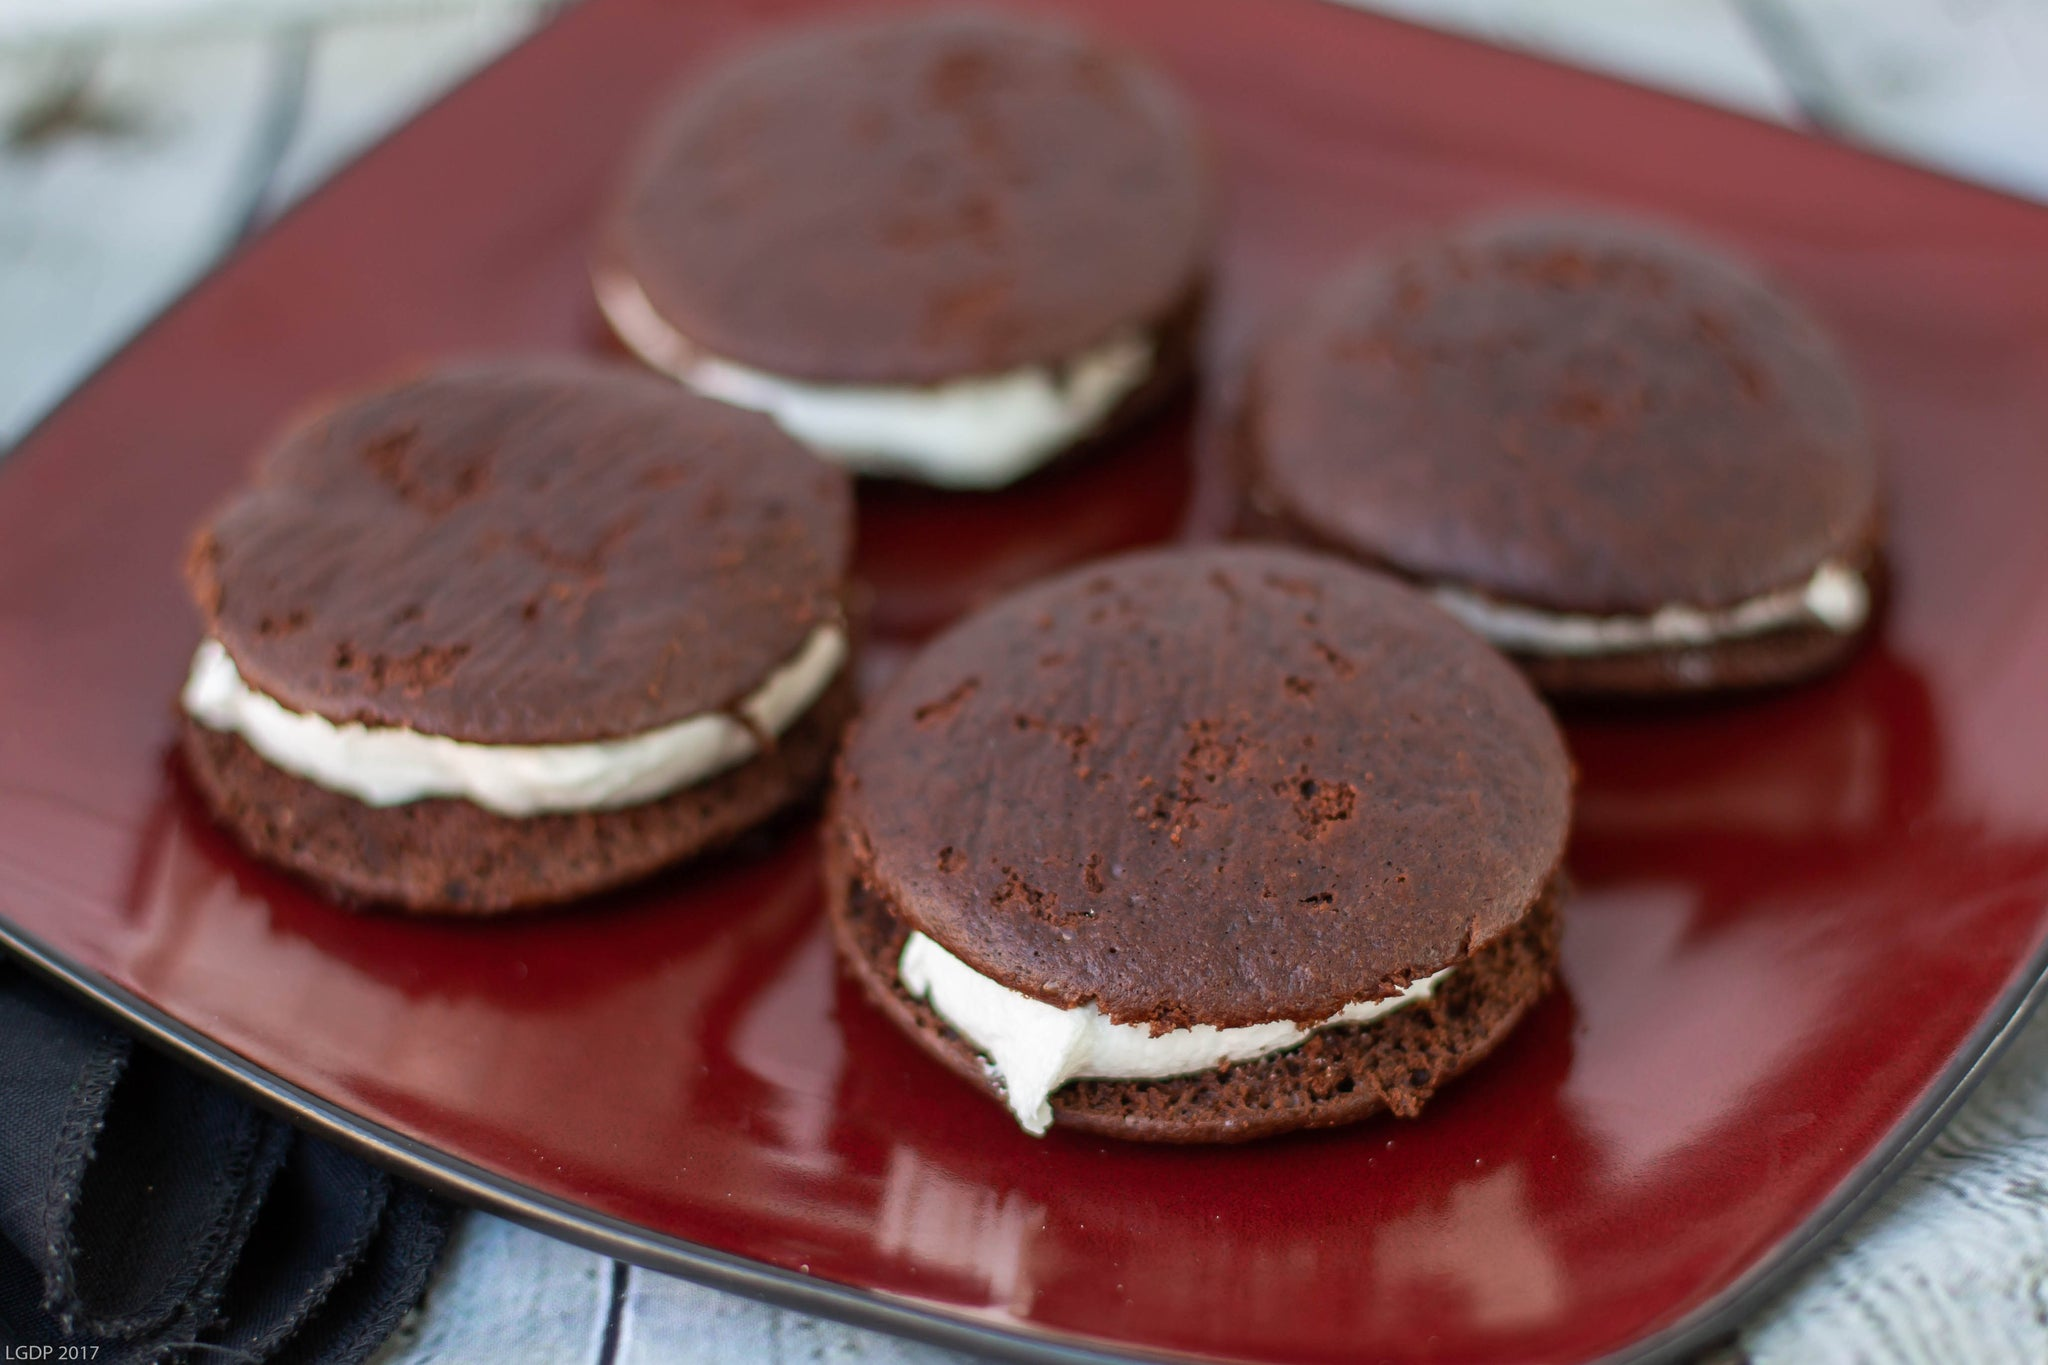 Chocolate Whoopie Pies w/ Vanilla Frosting (6ct.)